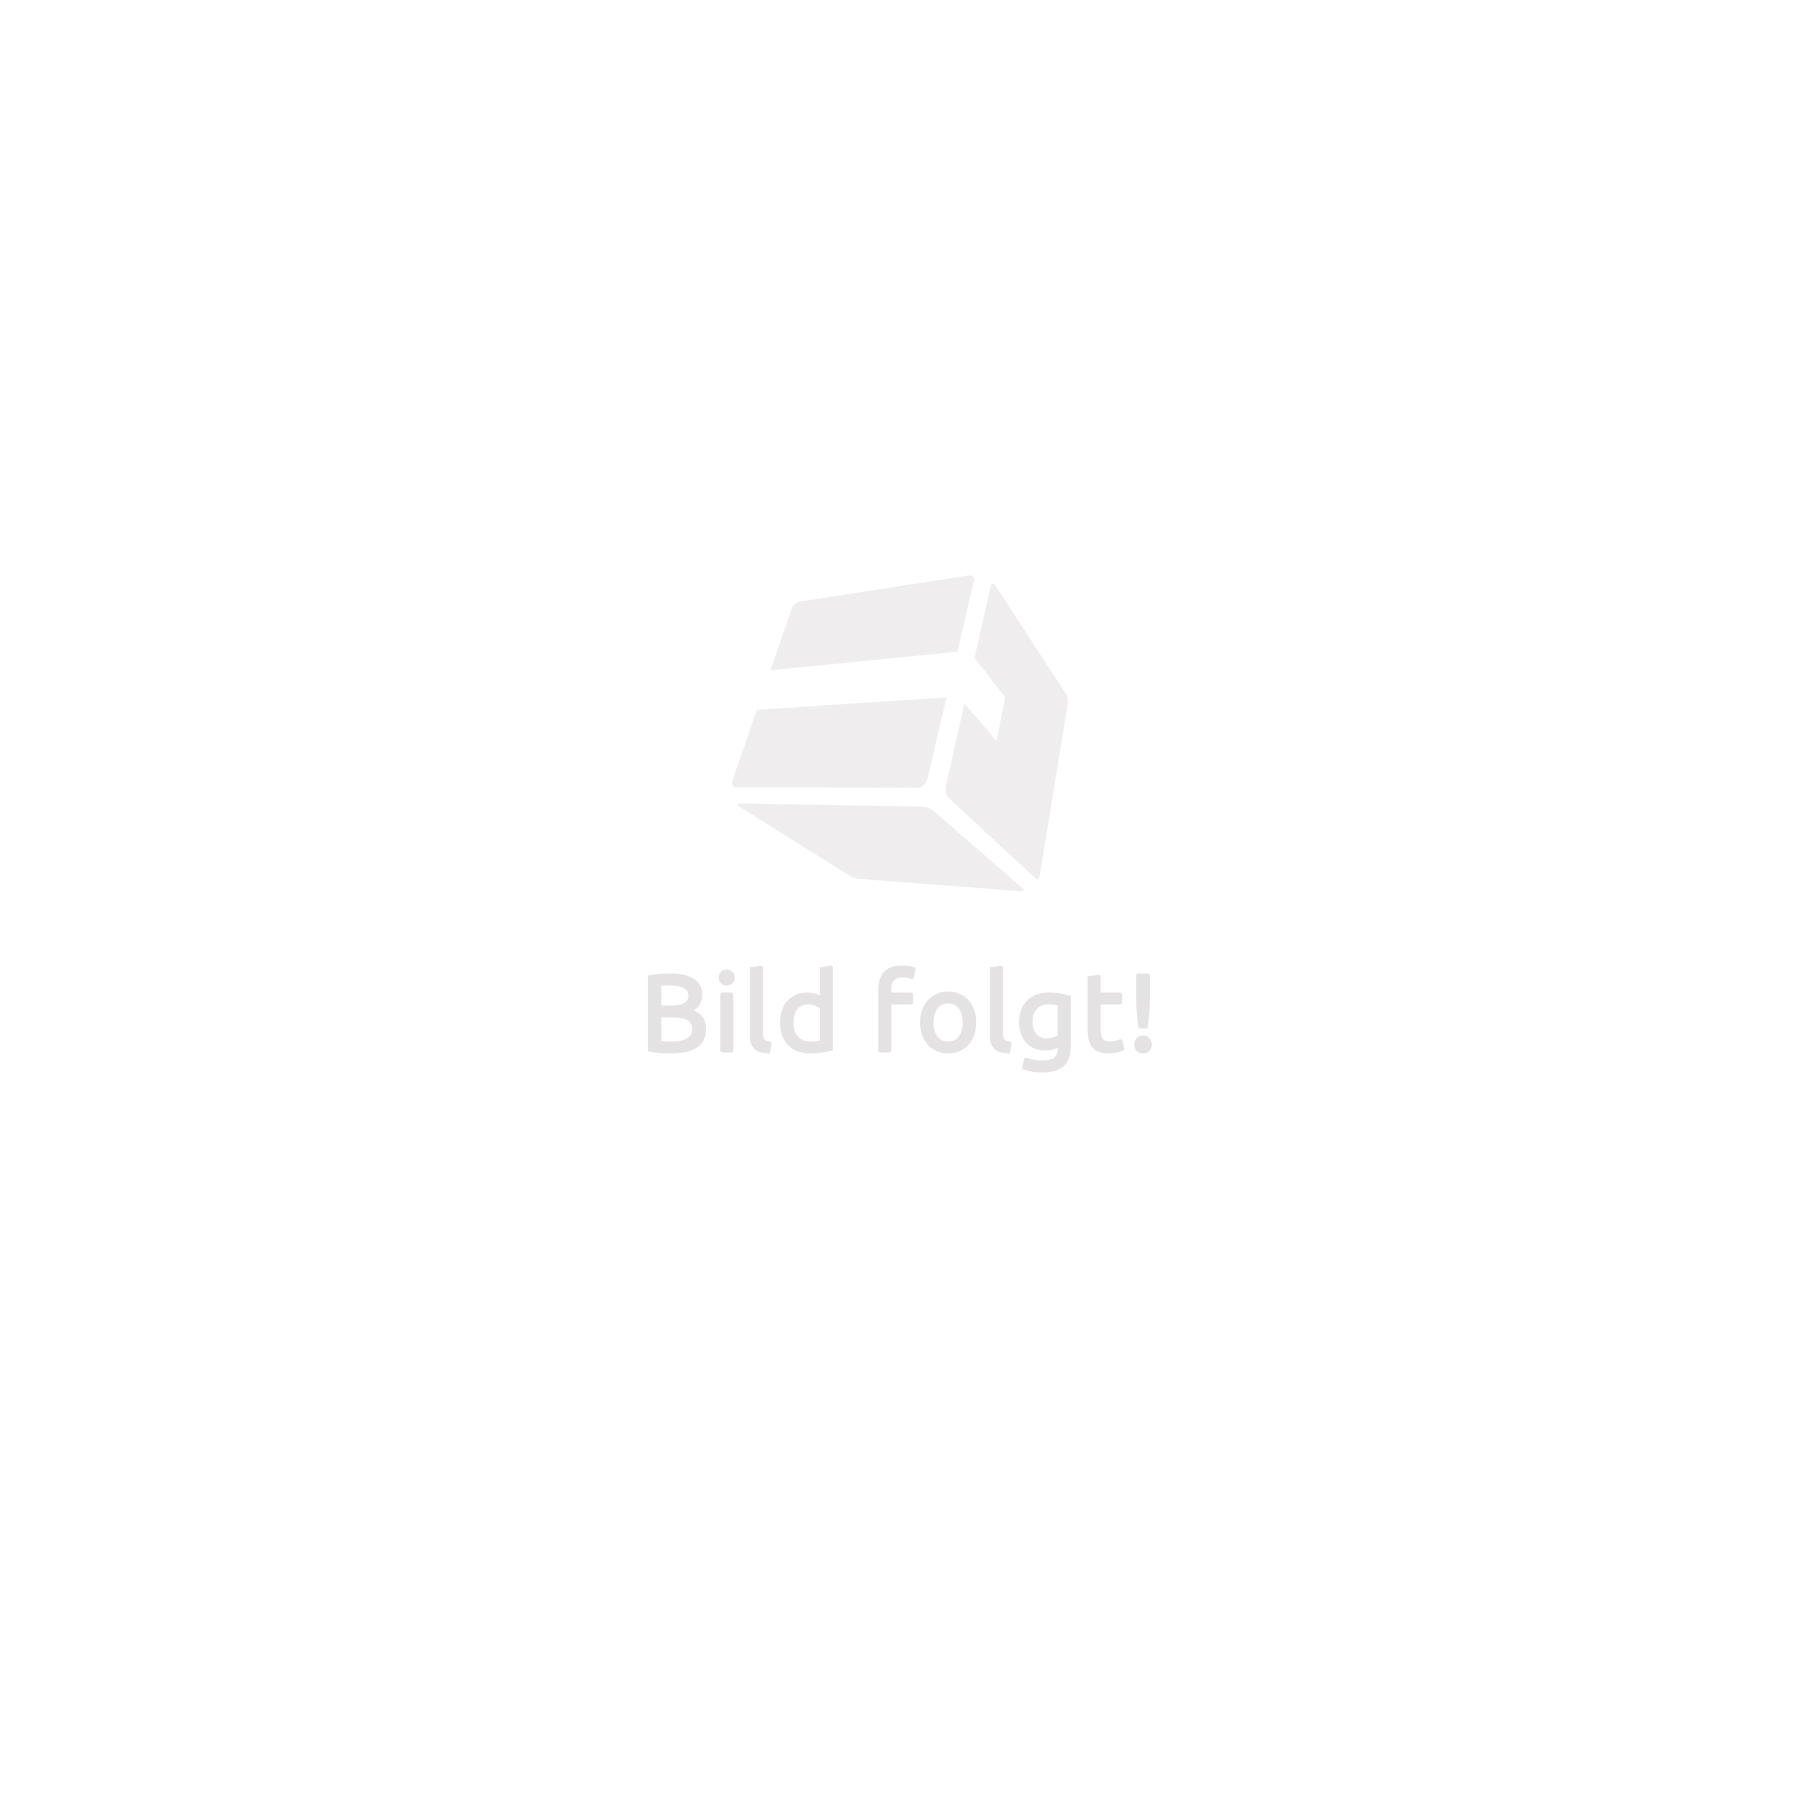 armoires plastique tag res meuble rangement 112 cm modulable motifs noir blanc ebay. Black Bedroom Furniture Sets. Home Design Ideas